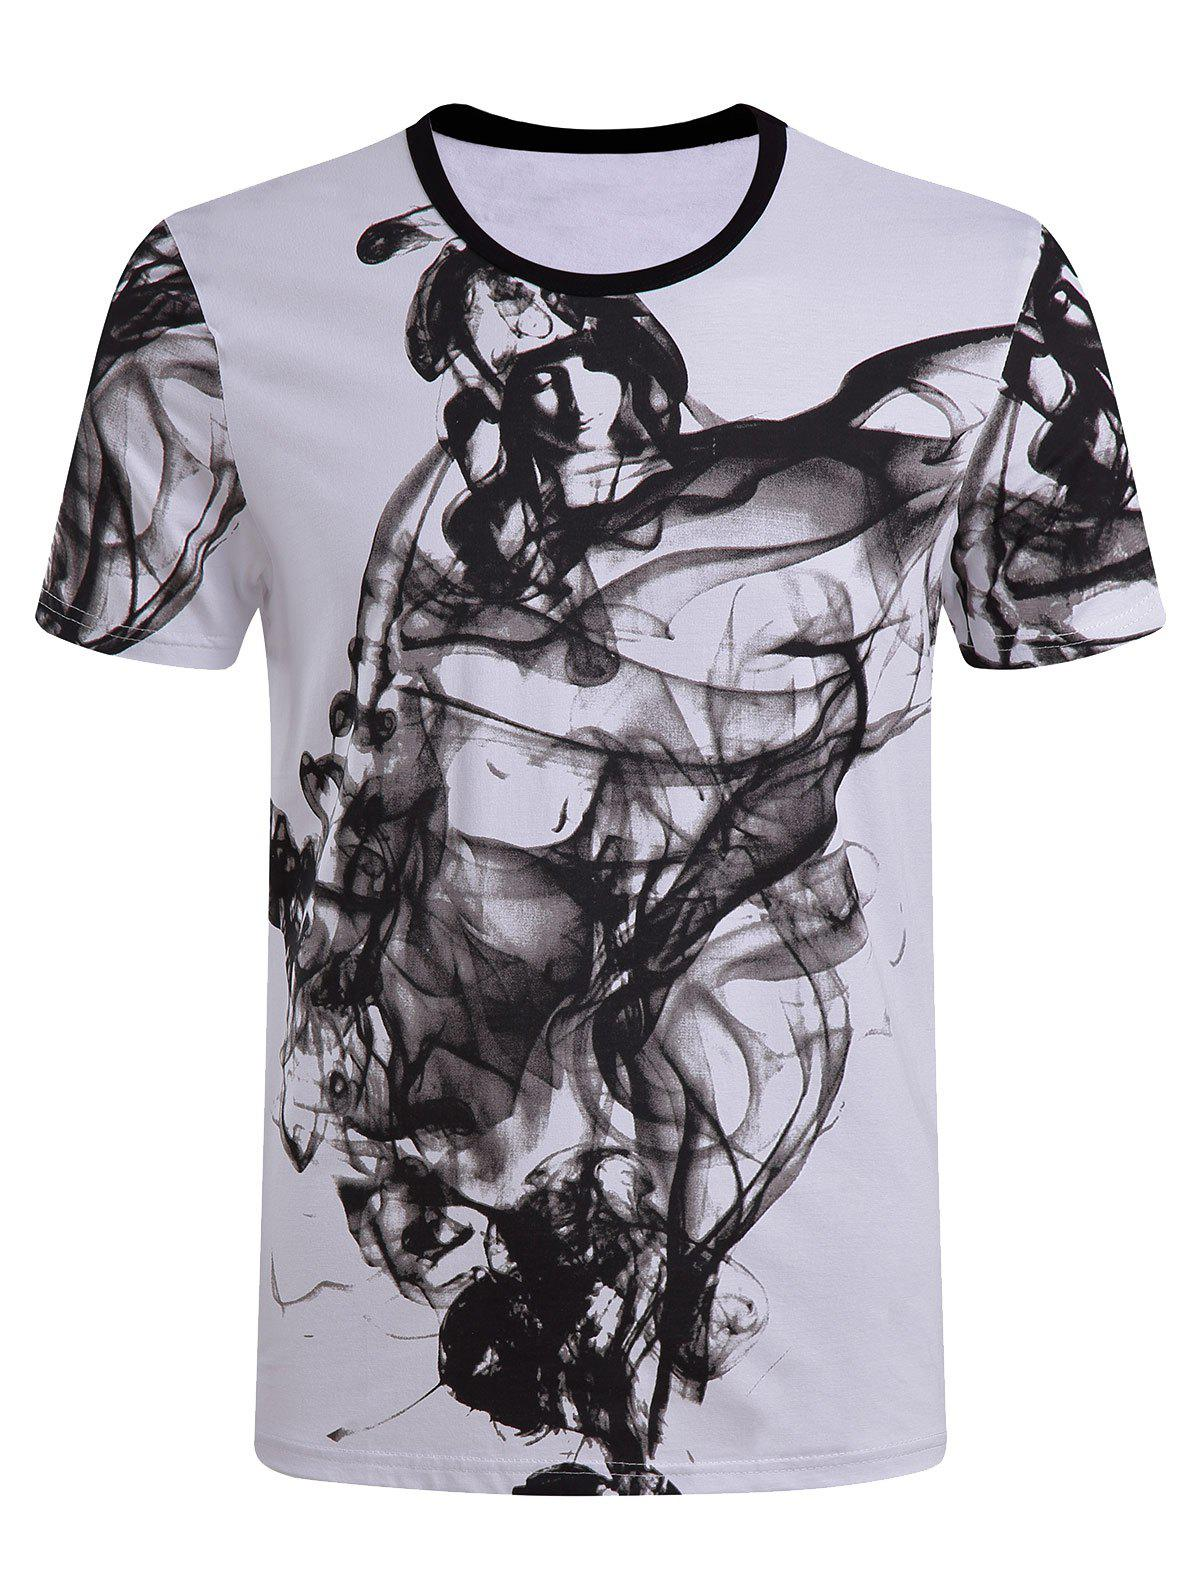 Men's Casual Short Sleeves Painting Round Collar T-Shirt - WHITE 4XL